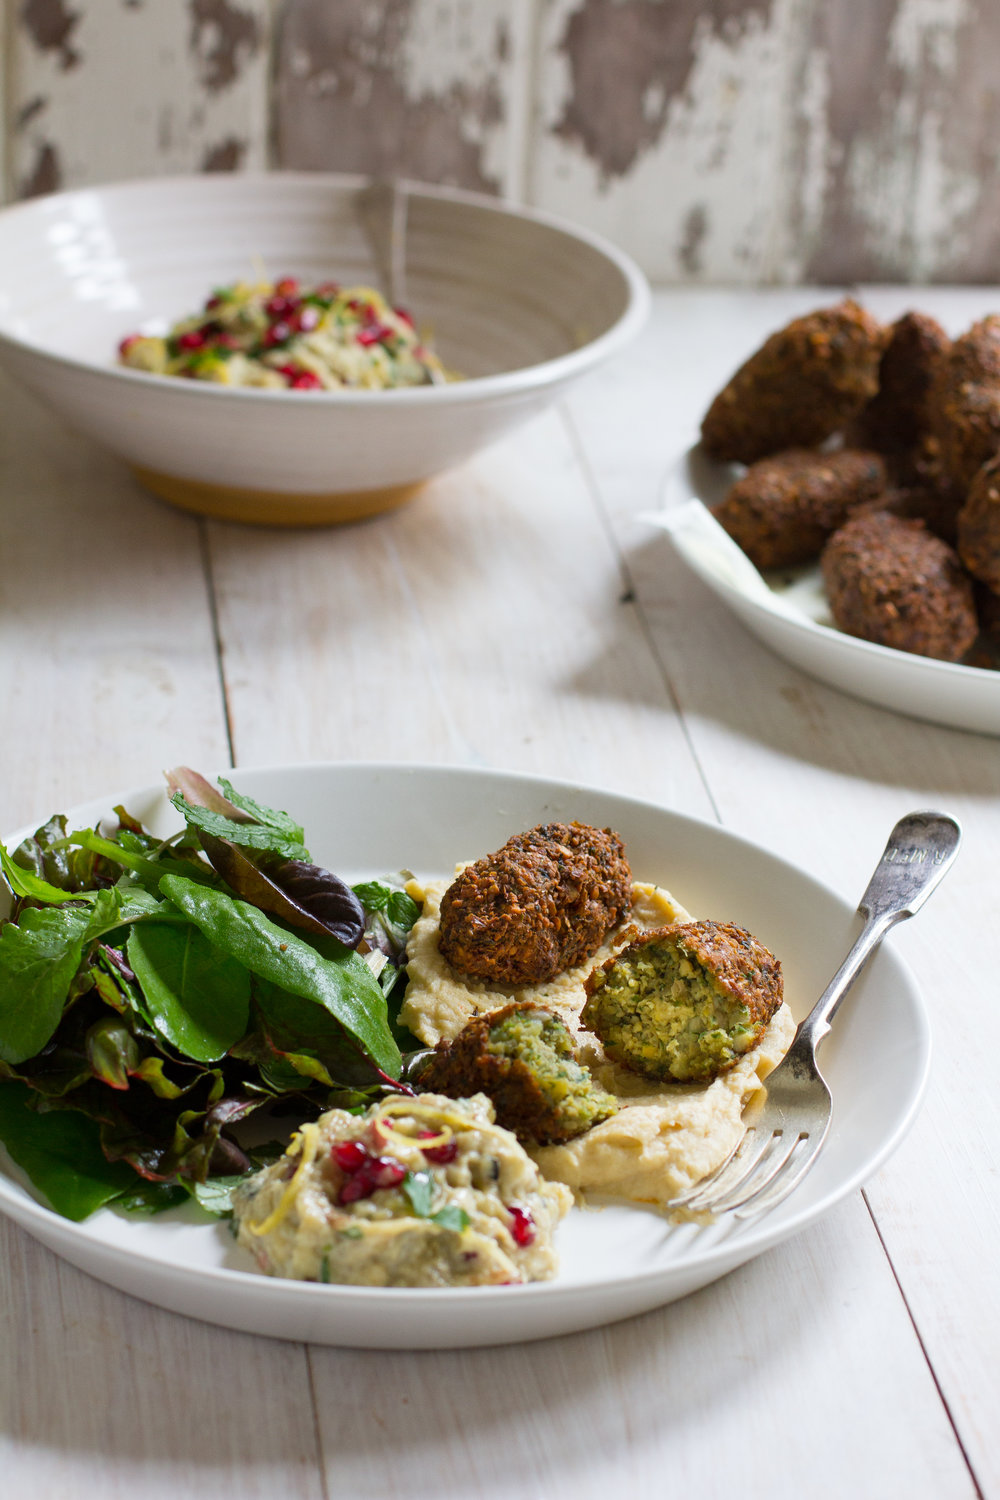 Once you've tried making these, you'll never go back to the store bought kind. Here's my step by step to the best falafel you've ever eaten